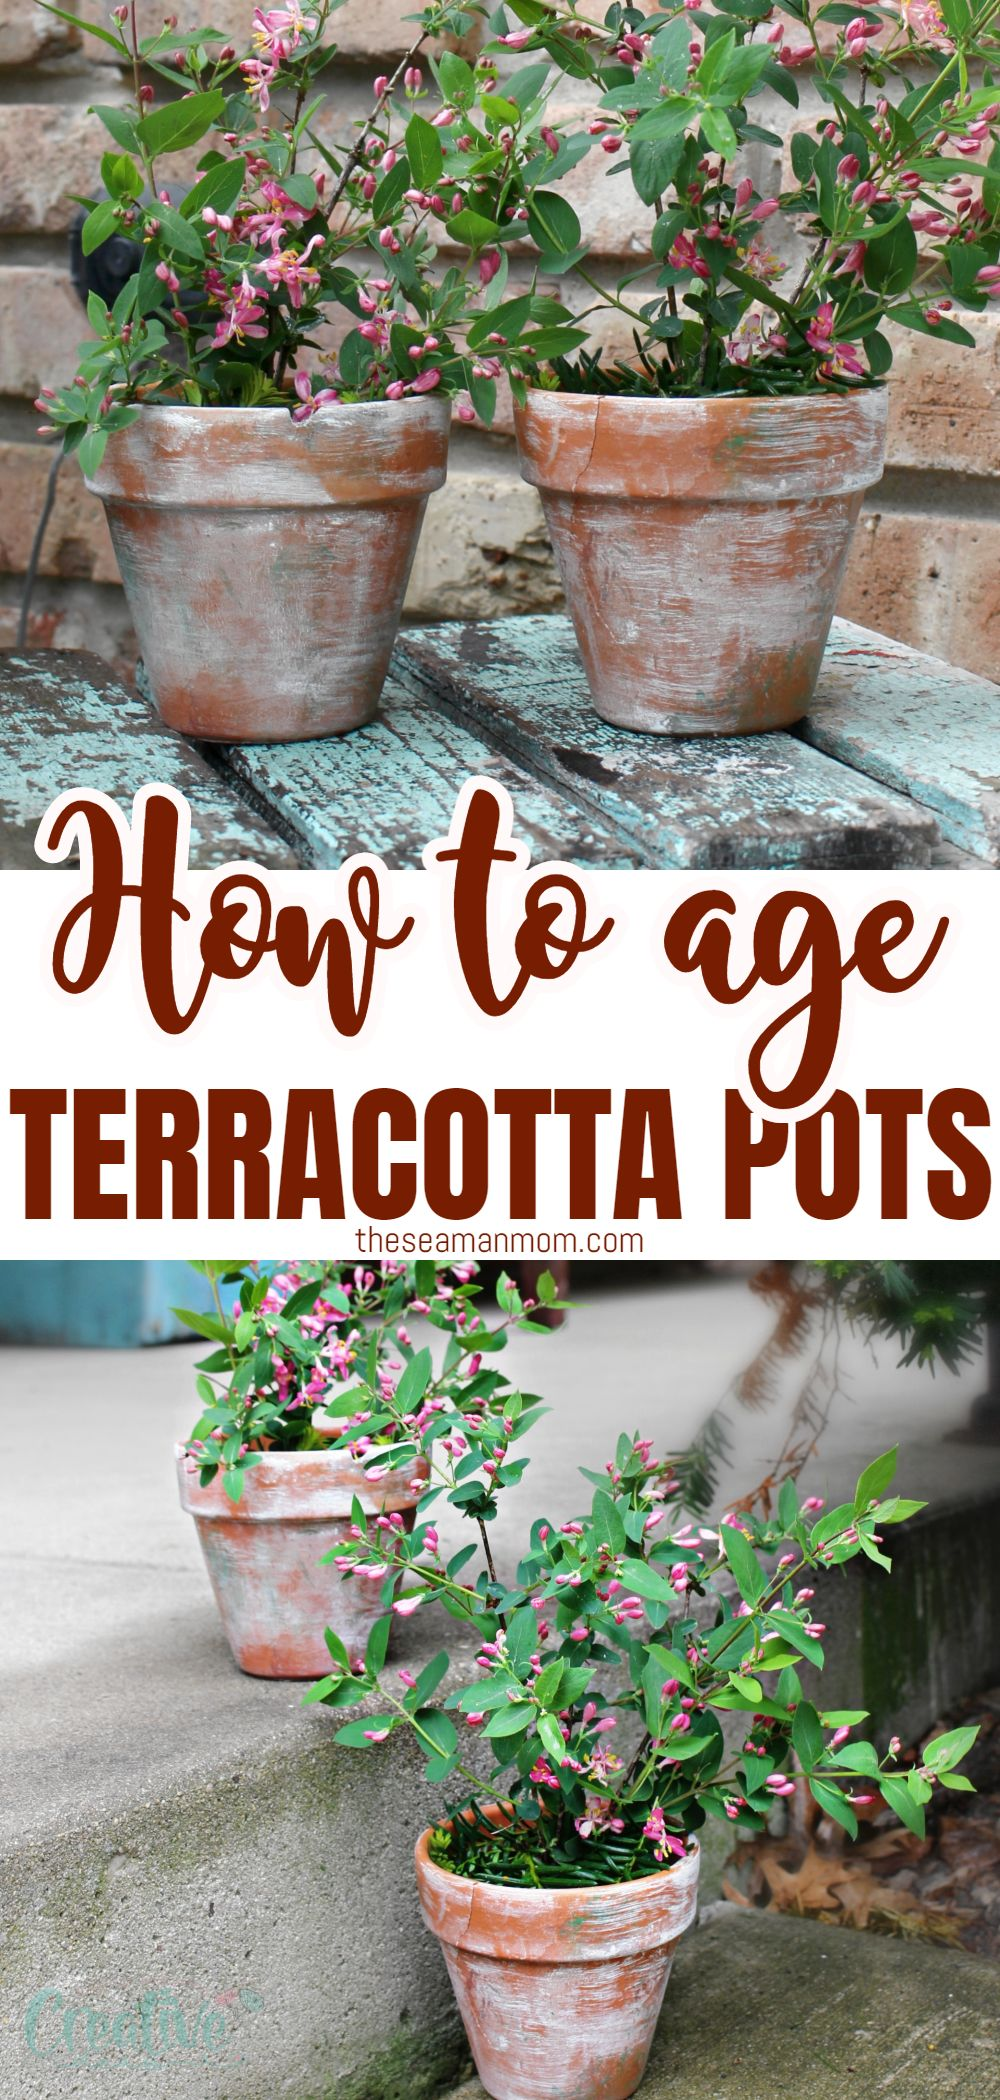 Bring a little vintage to your home decor with a couple of distressed, white washed terracotta pots. These aged terracotta pots are so insanely easy to make you'll find yourself whipping up a bunch of these in just a matter of minutes! In this tutorial you'll learn how to make terracotta pots look old in just a few easy, simple steps! via @petroneagu